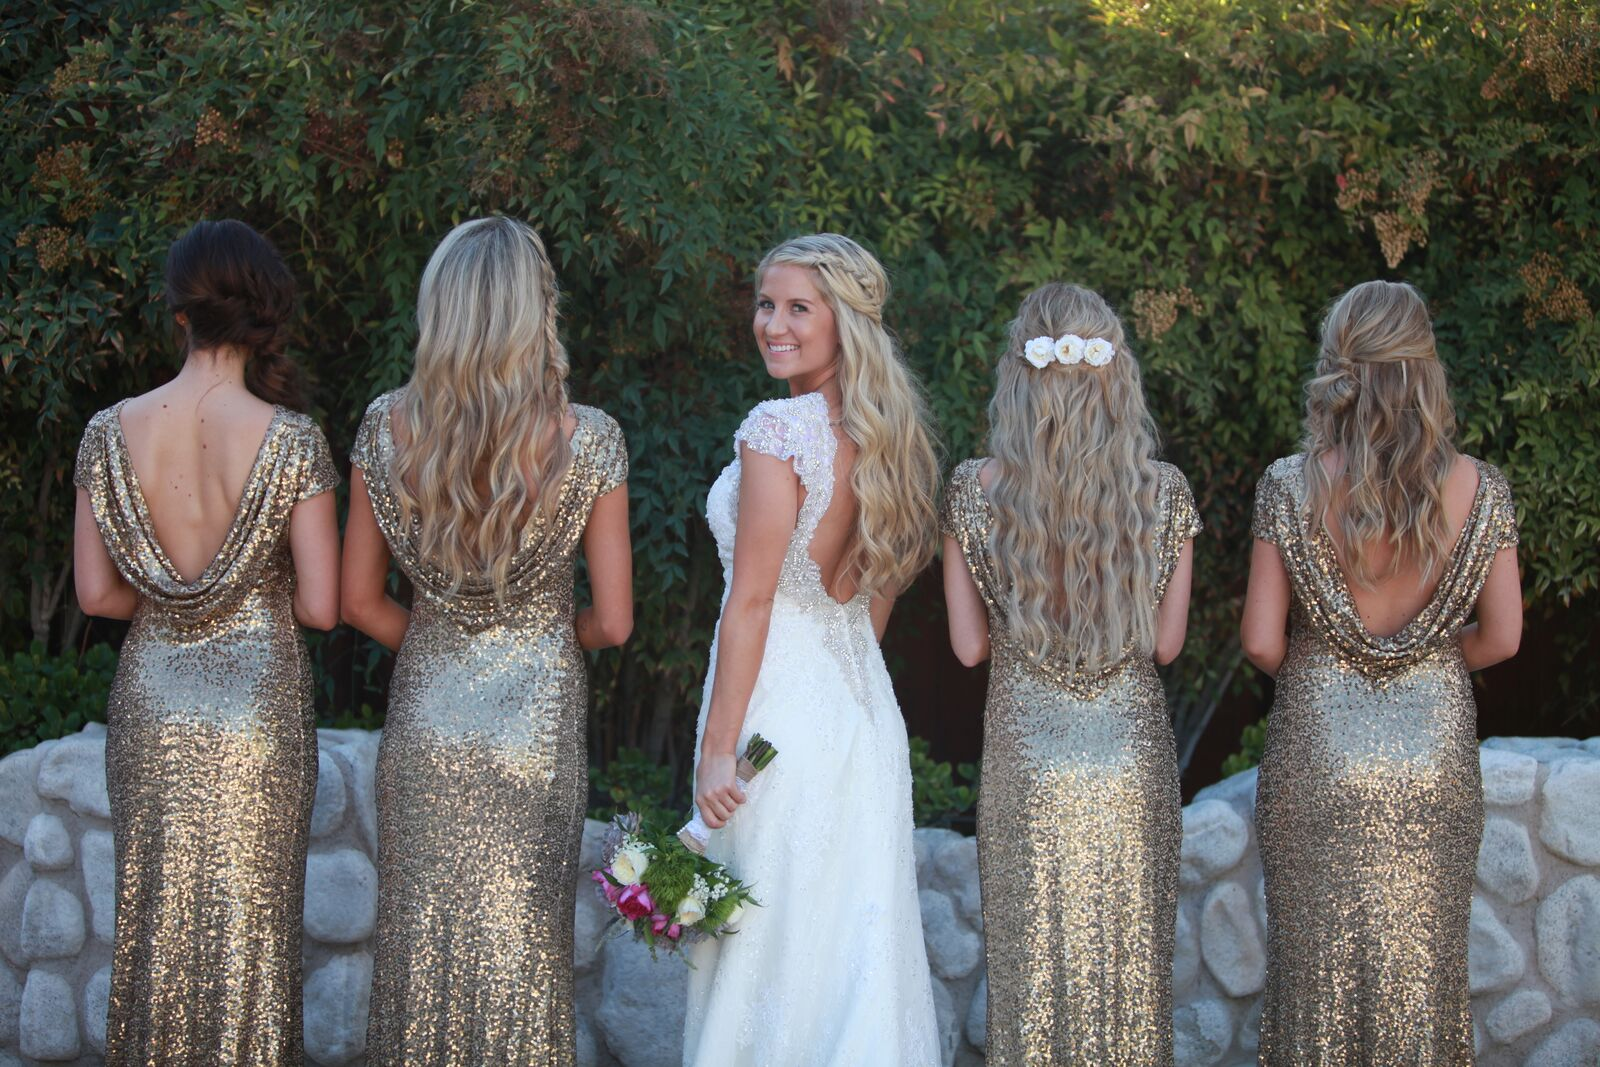 Bride and Bridesmaids wedding day in gold sequined dresses